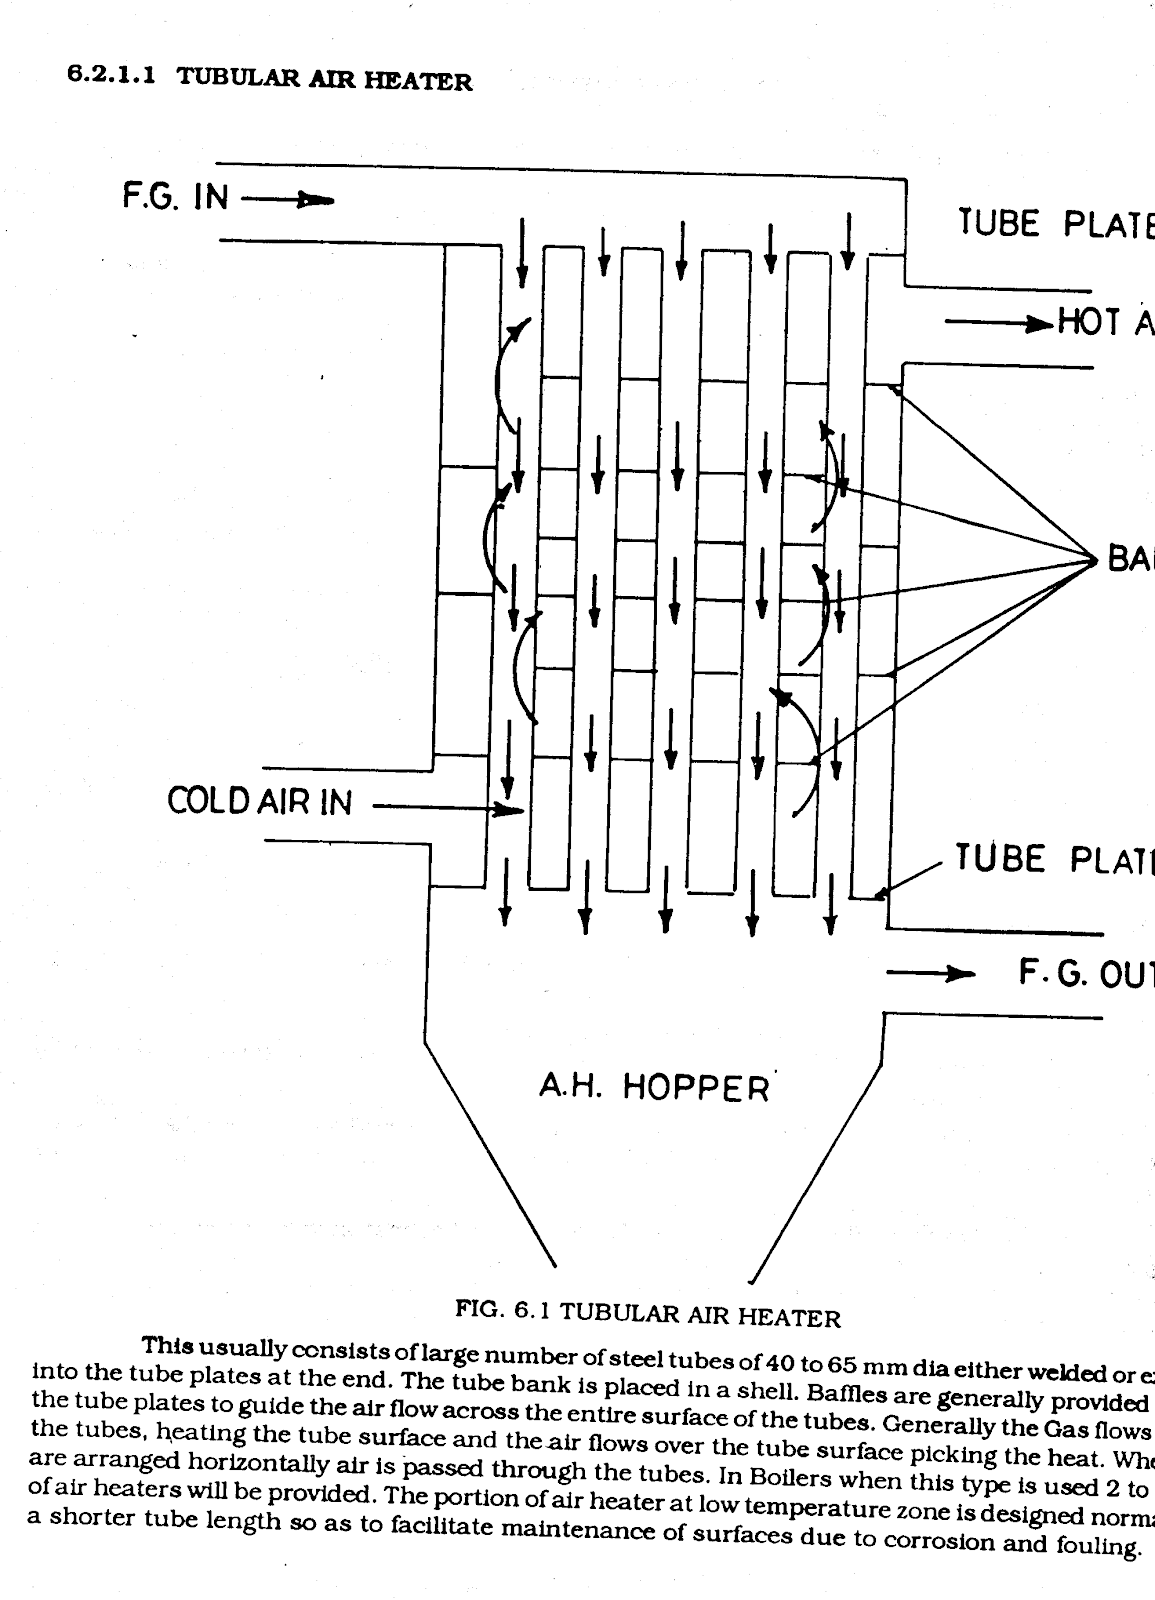 Air Pre Heater Thermal Power Plant Dry Steam Diagram Tubular Heaters And Plate Type Are Coming Under This Category The Not Generally Used In Large Capacity Boilers